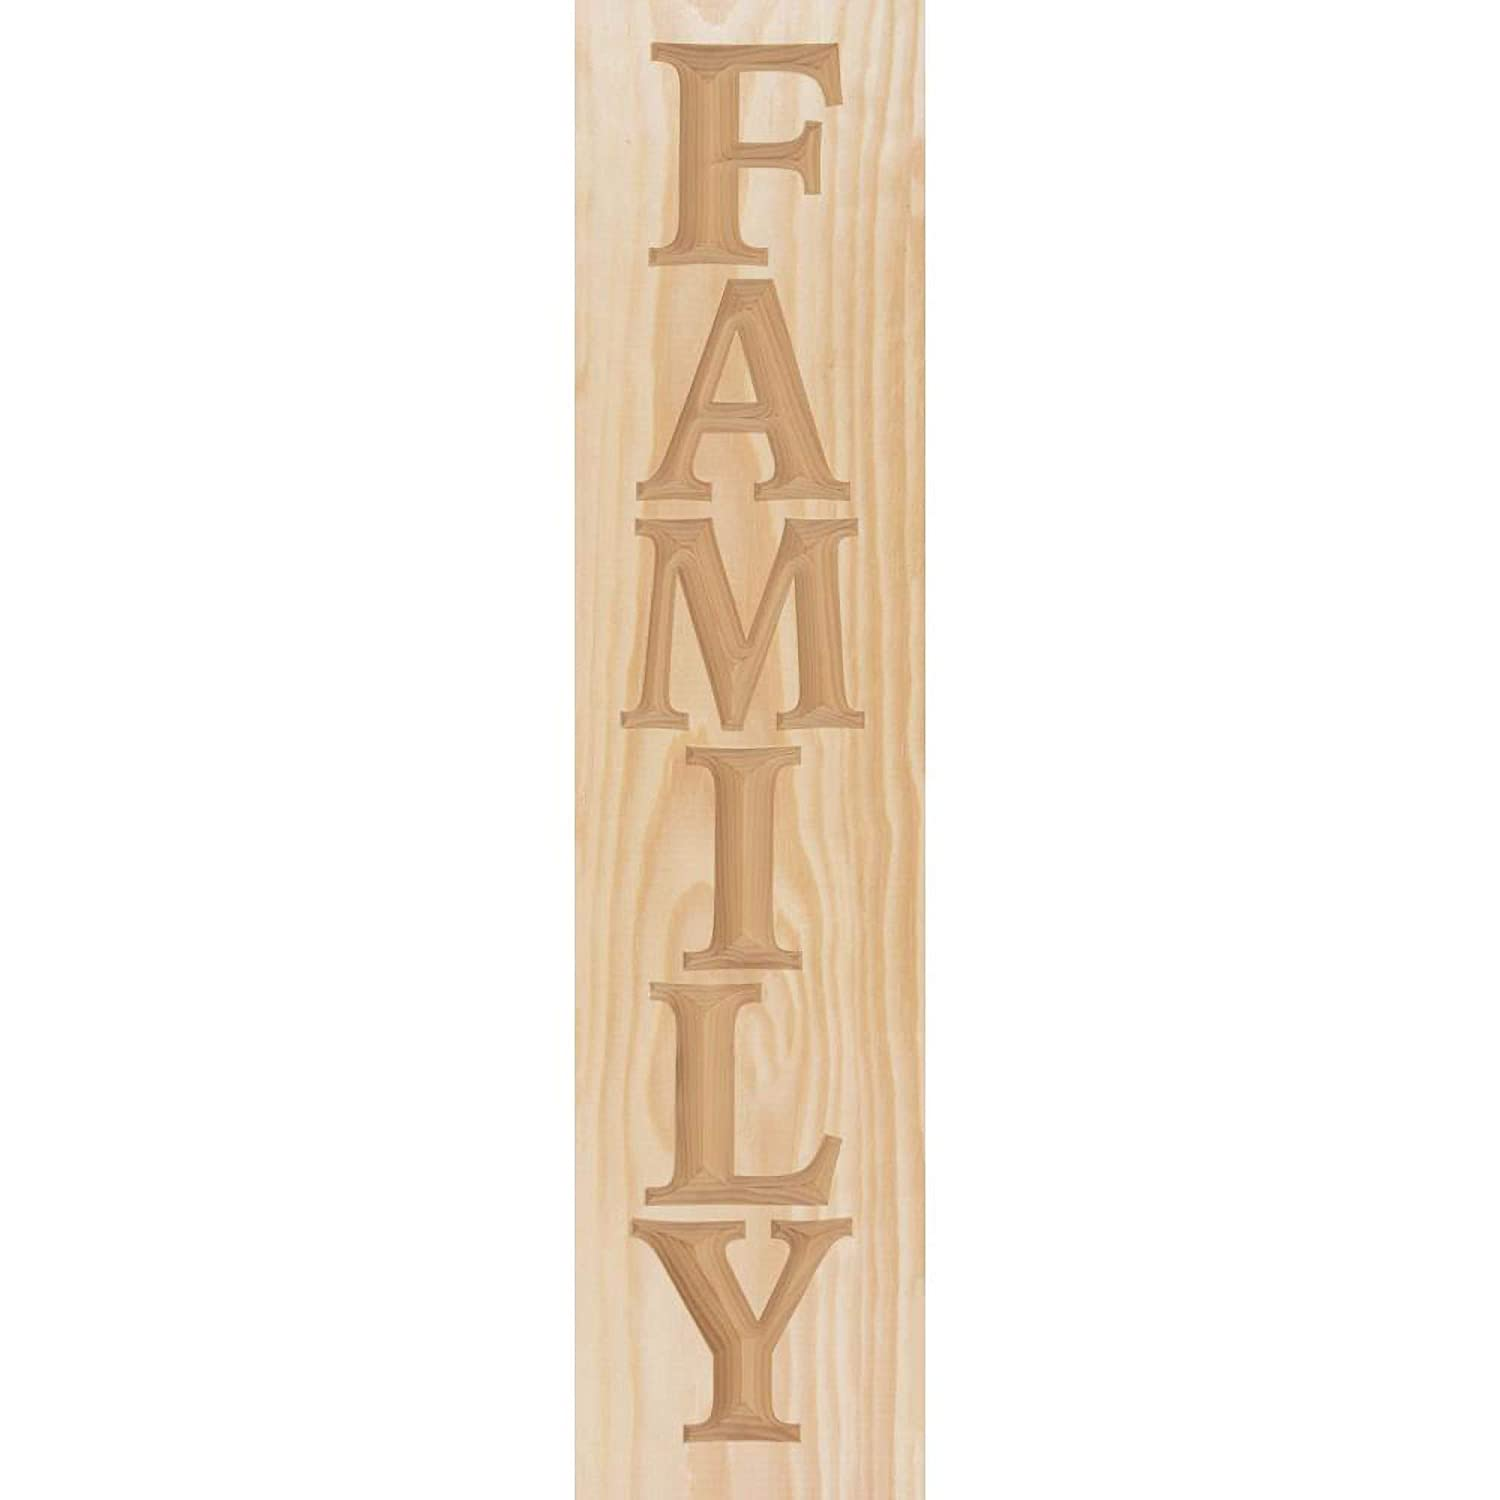 P Graham Dunn Family Carved Stick Natural Finish 24 x 6 Kiln Dried Pine Wood Craft Plaque